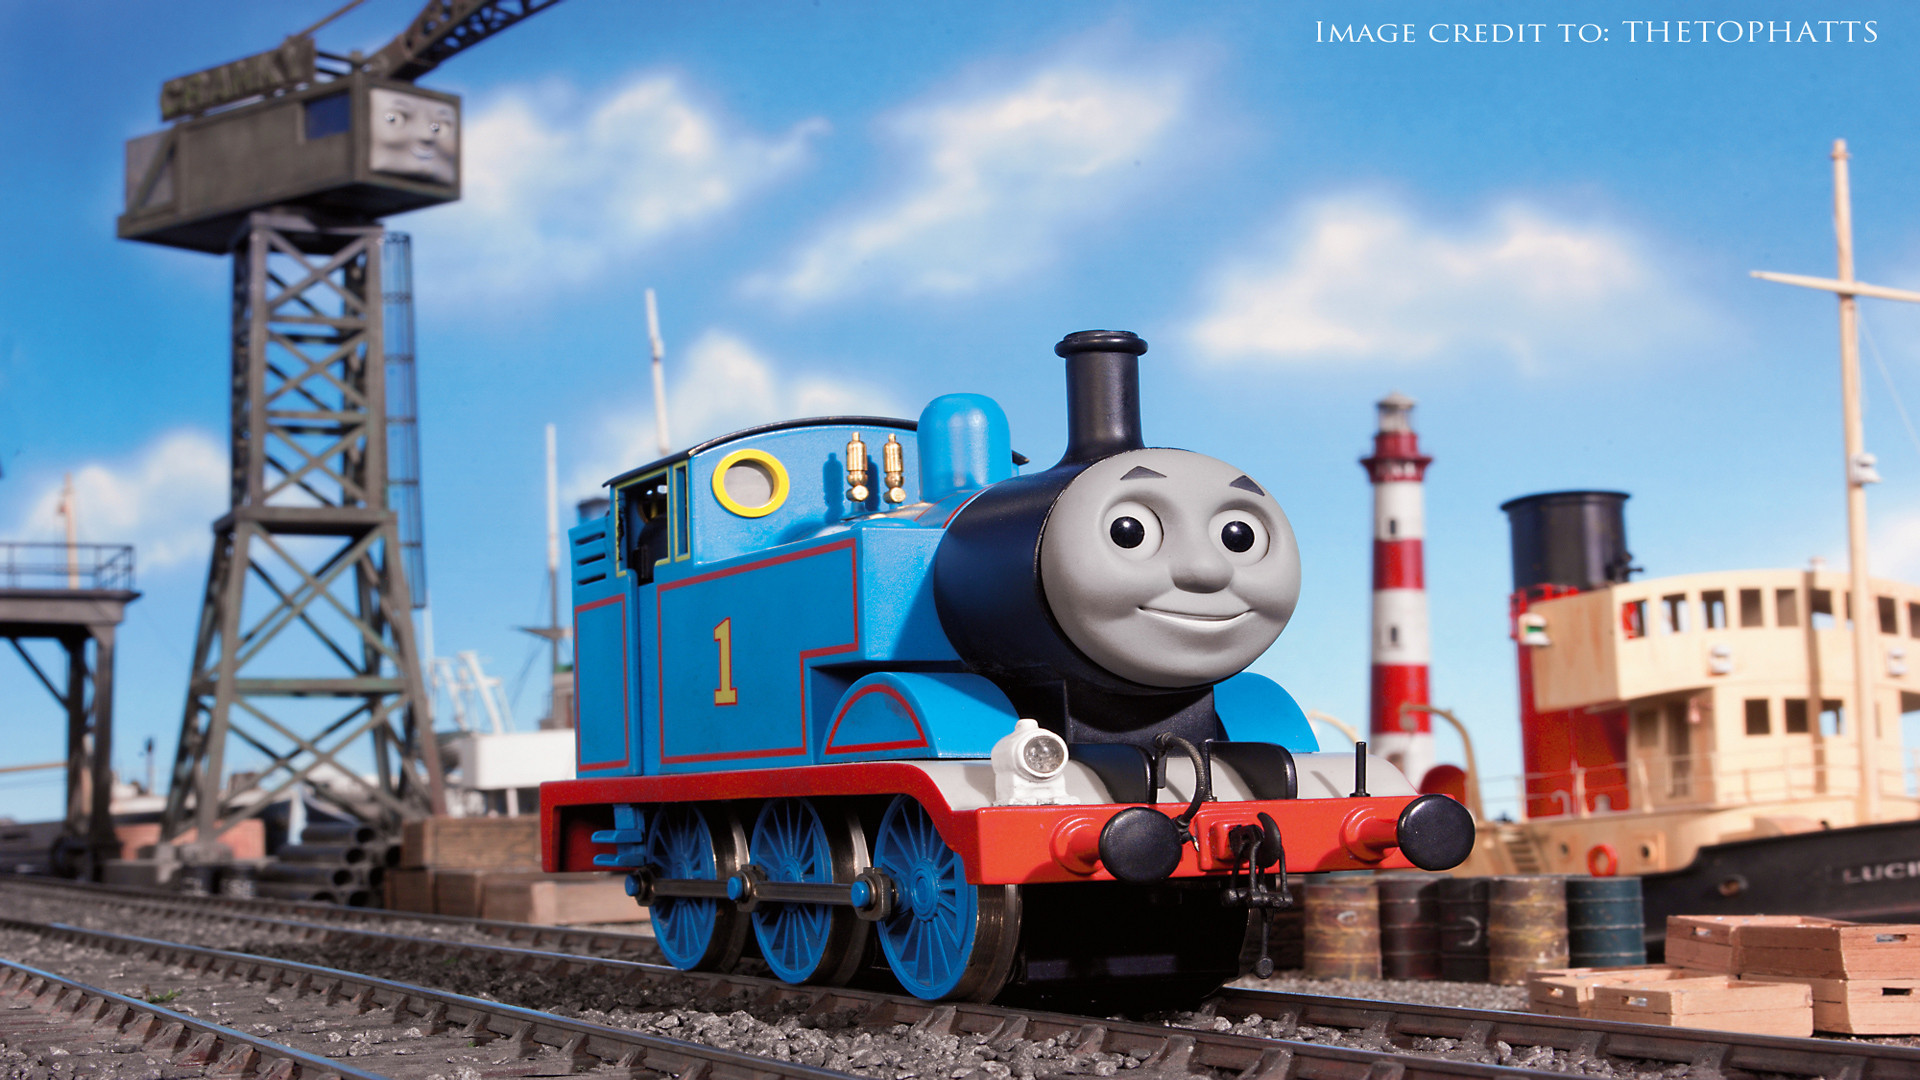 Thomas and friends wallpaper hd 61 images - Background thomas and friends ...